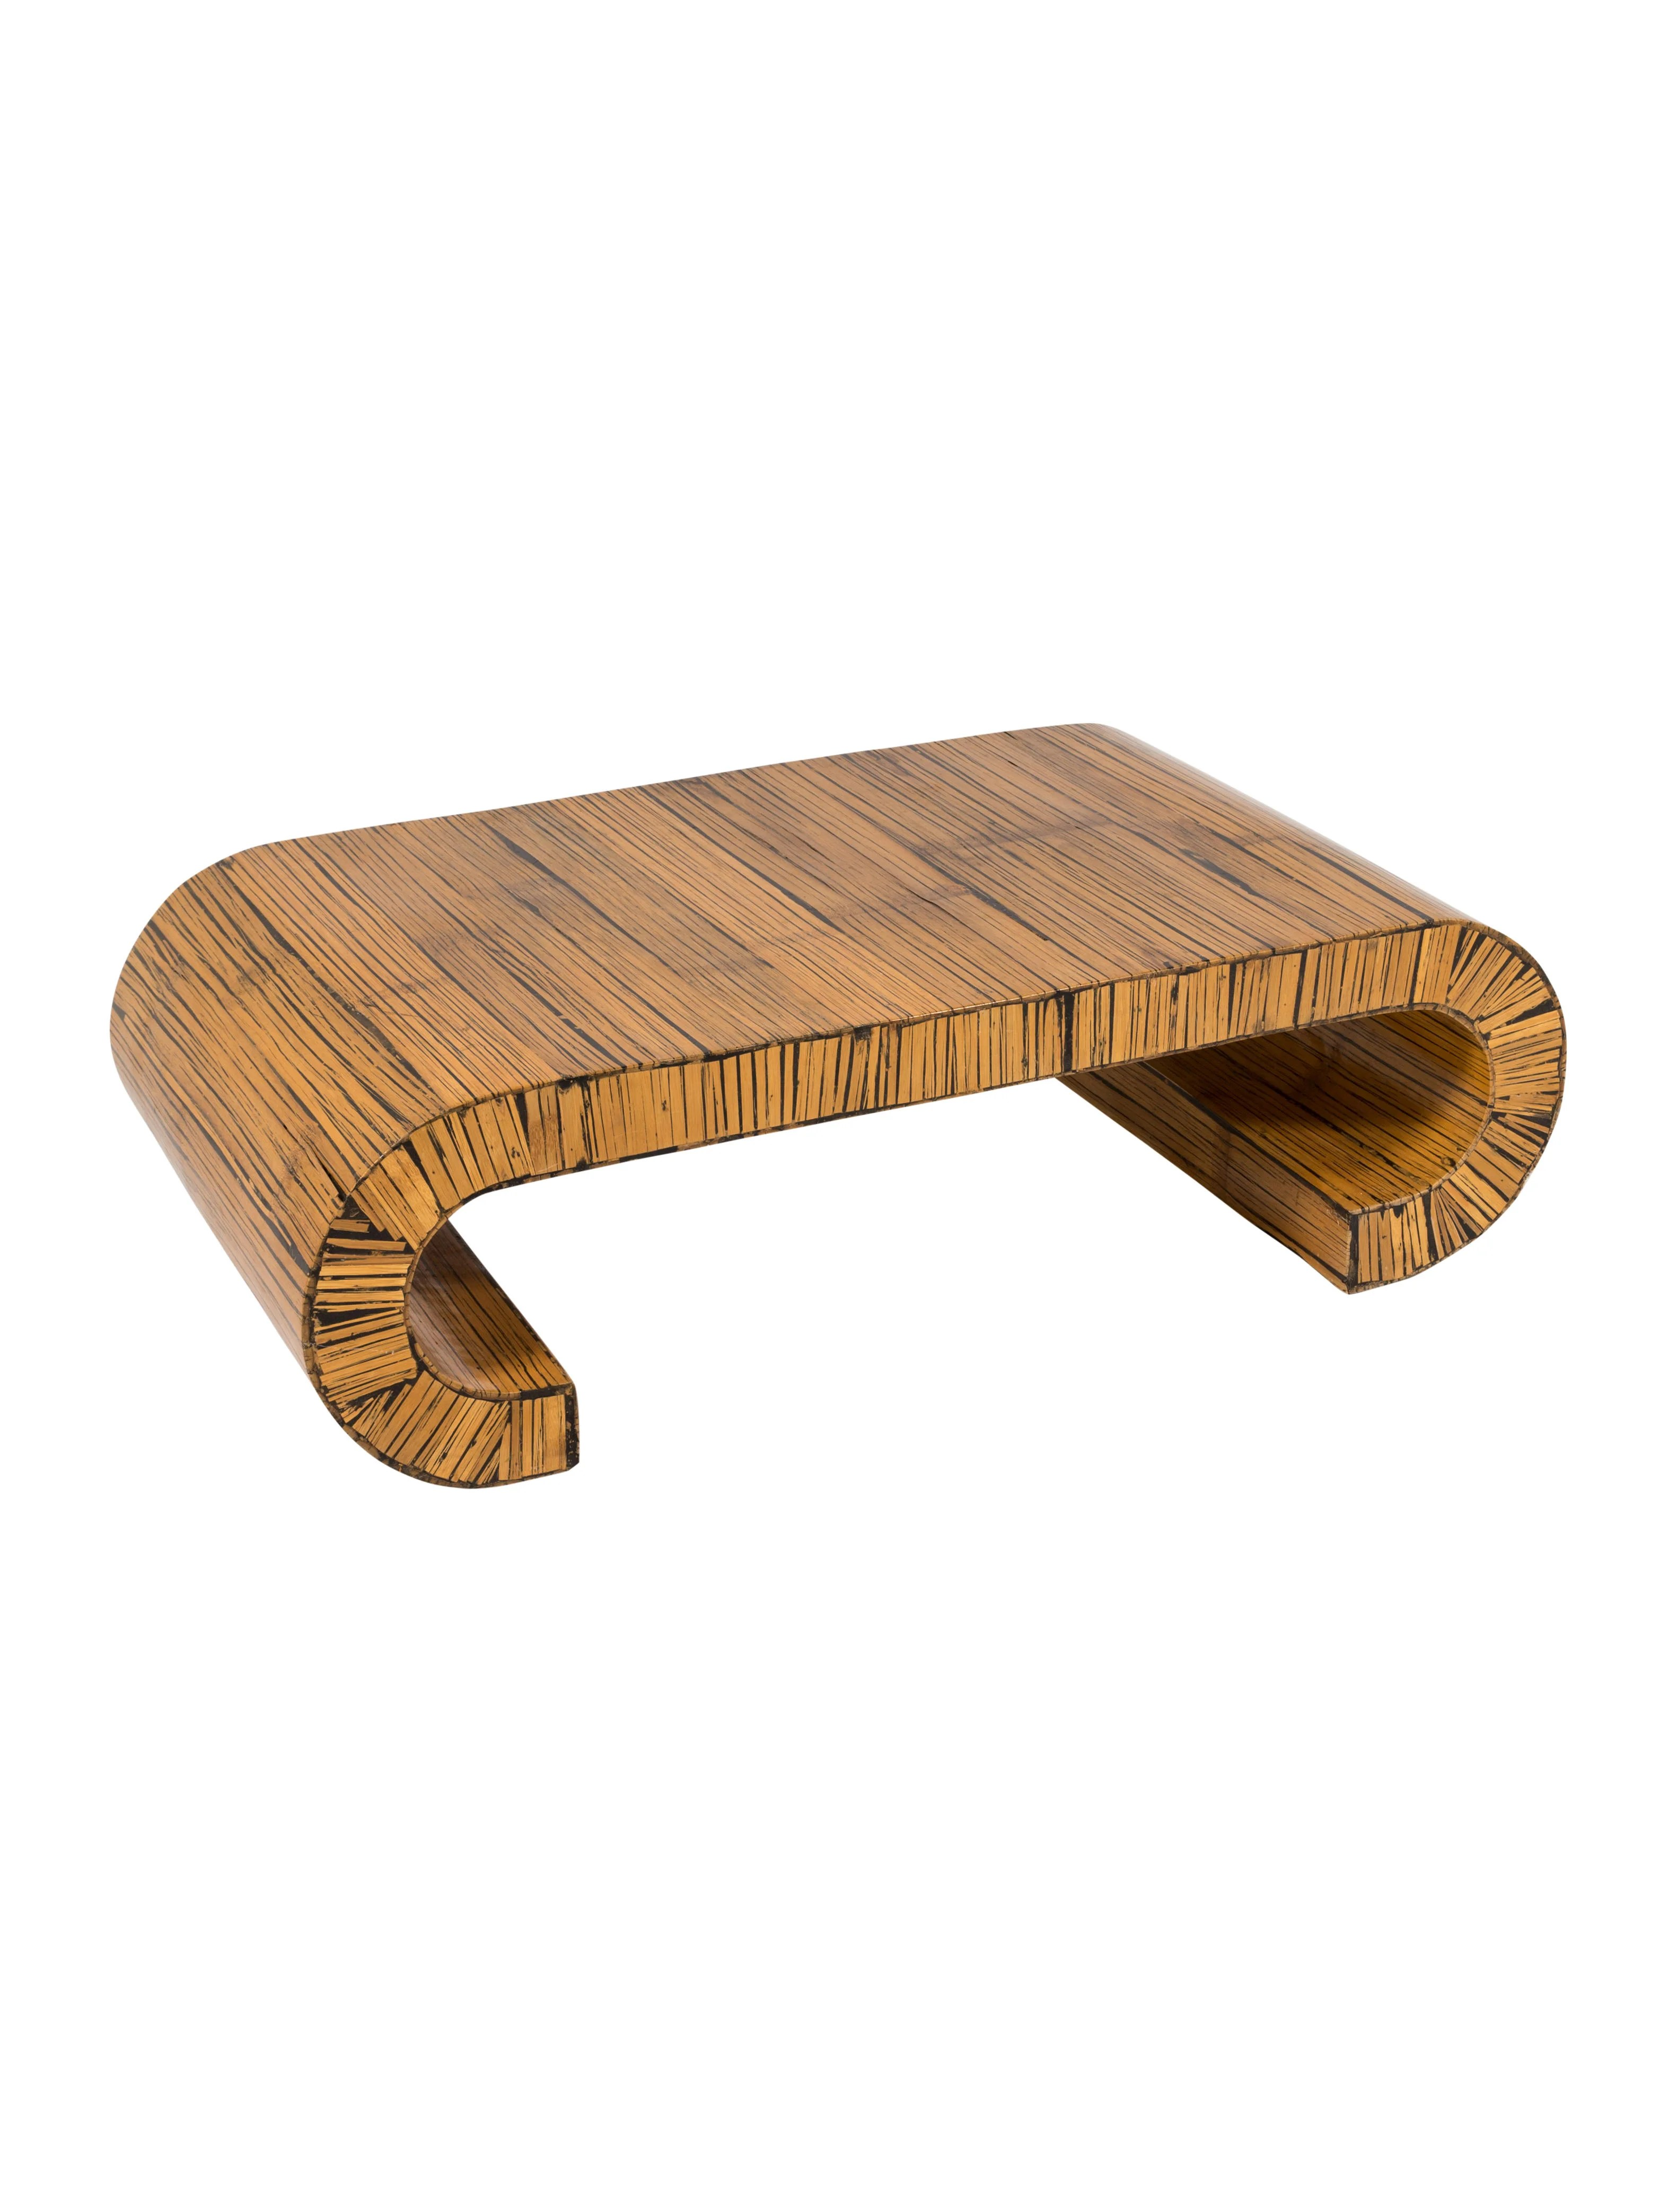 Curved Coffee Table Curved Wood Coffee Table - Furniture - Furni20550 | The